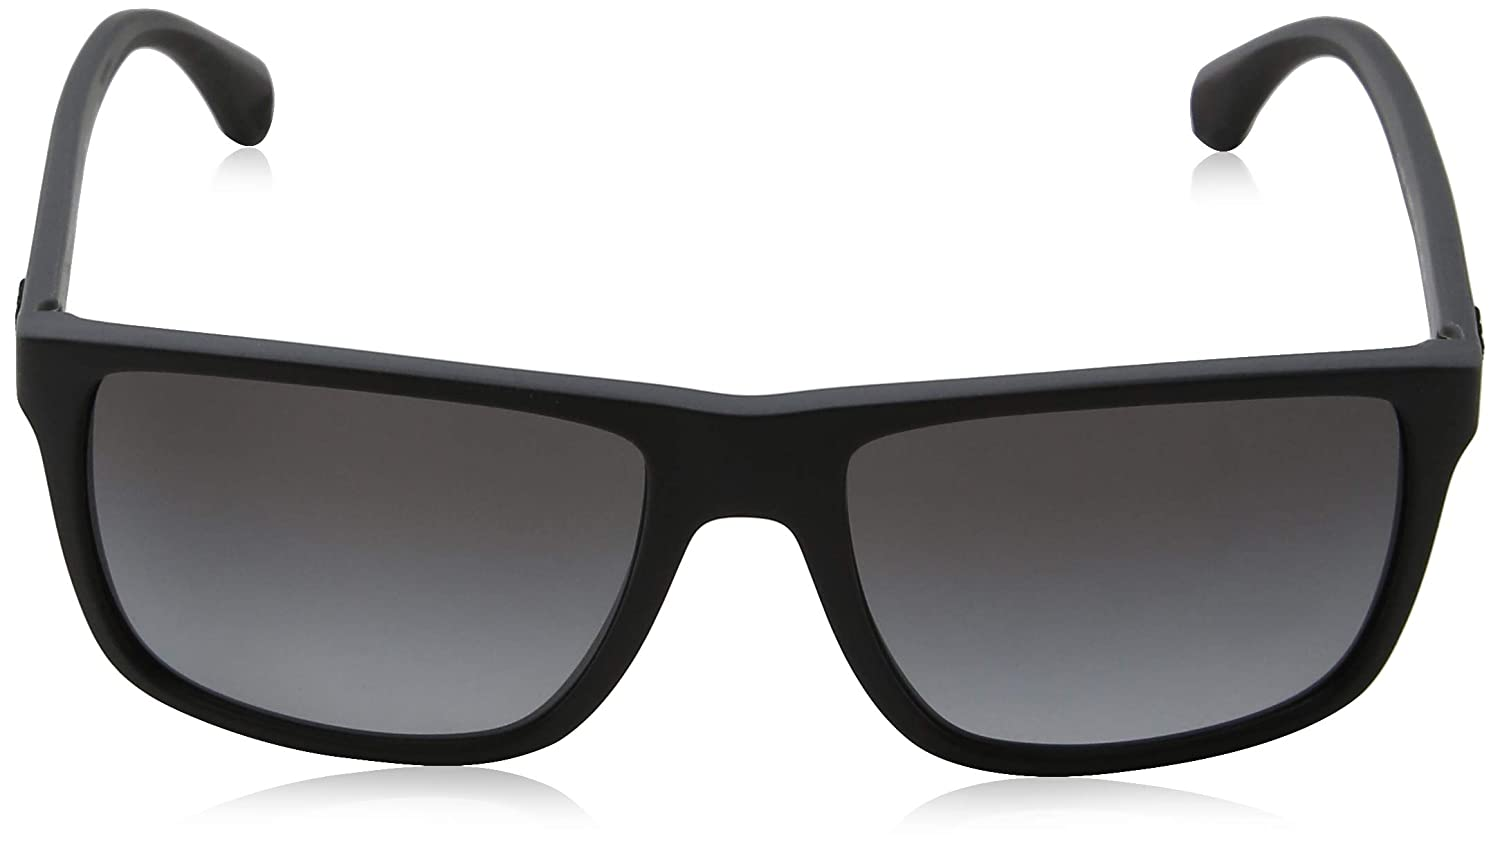 6b5caf628ae Amazon.com  Emporio Armani Men s 0EA4033 Black Grey Rubber Polar Grey  Gradient Sunglasses  Emporio Armani  Clothing